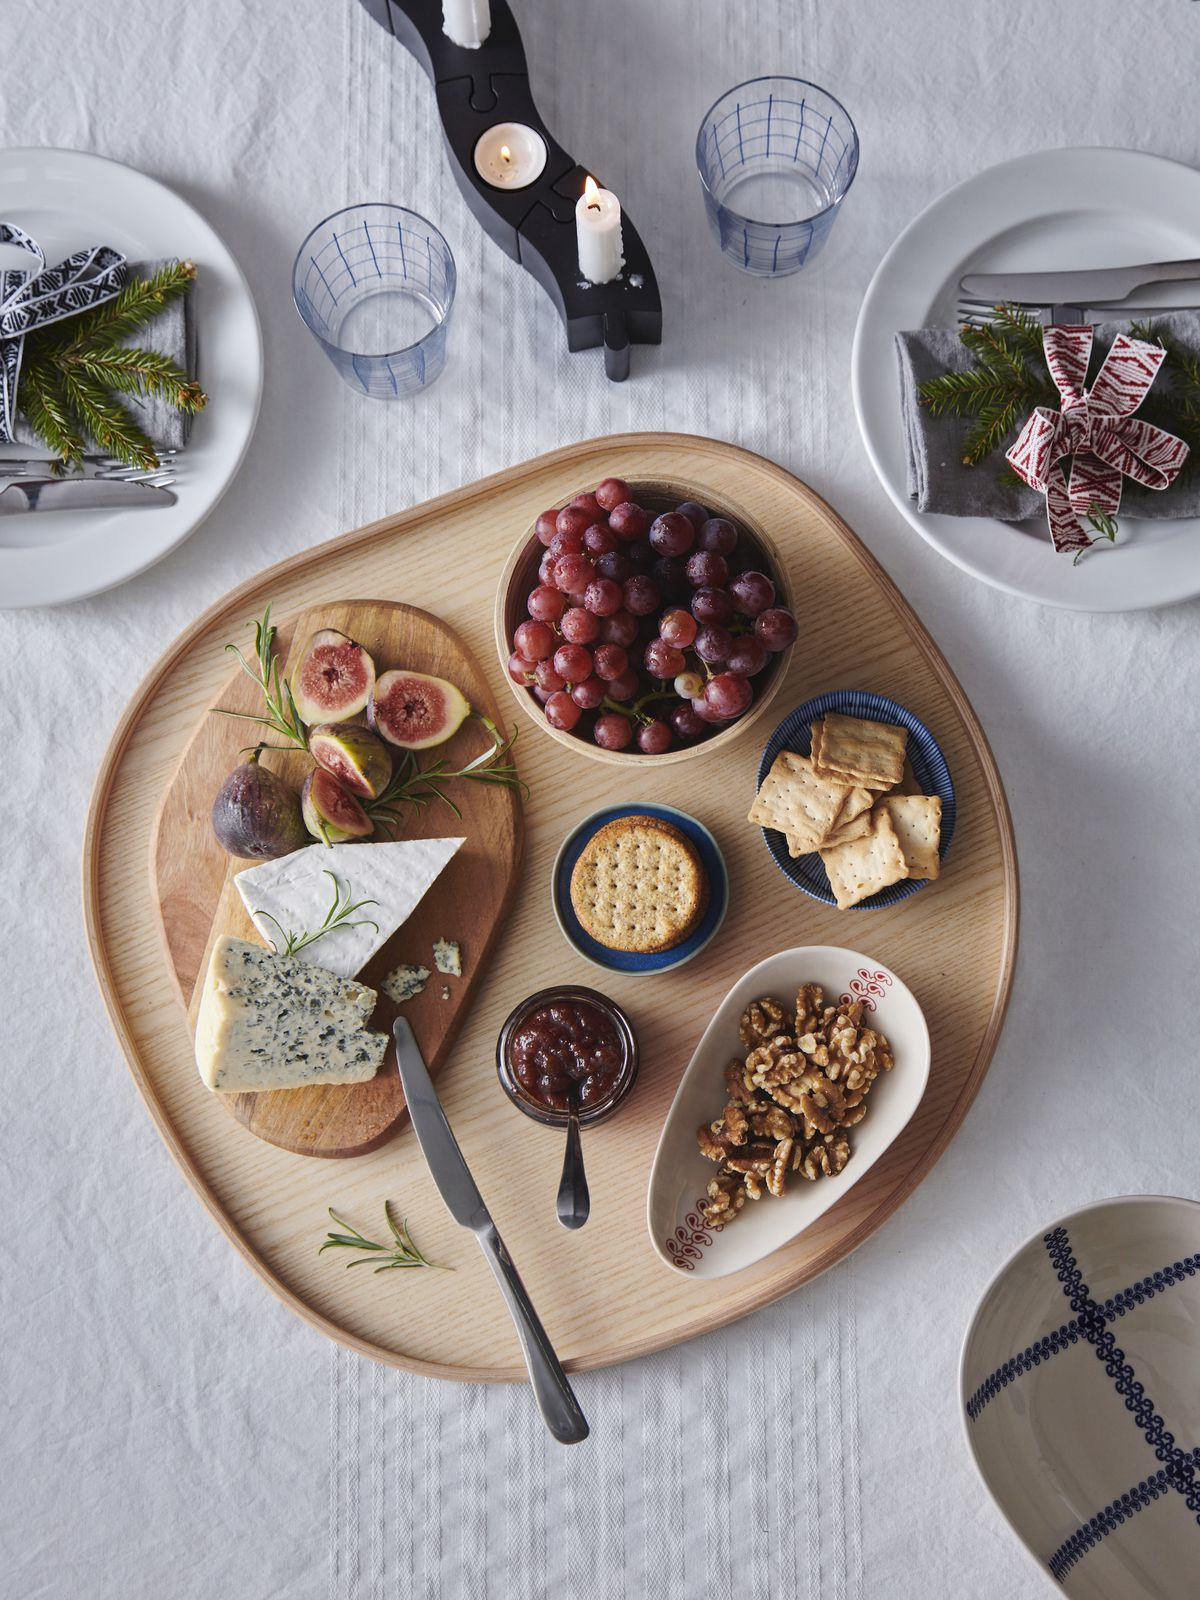 An overhead shot of a wooden serving tray containing a smaller board of cheese, and small dishes holding grapes, nuts, and crackers.